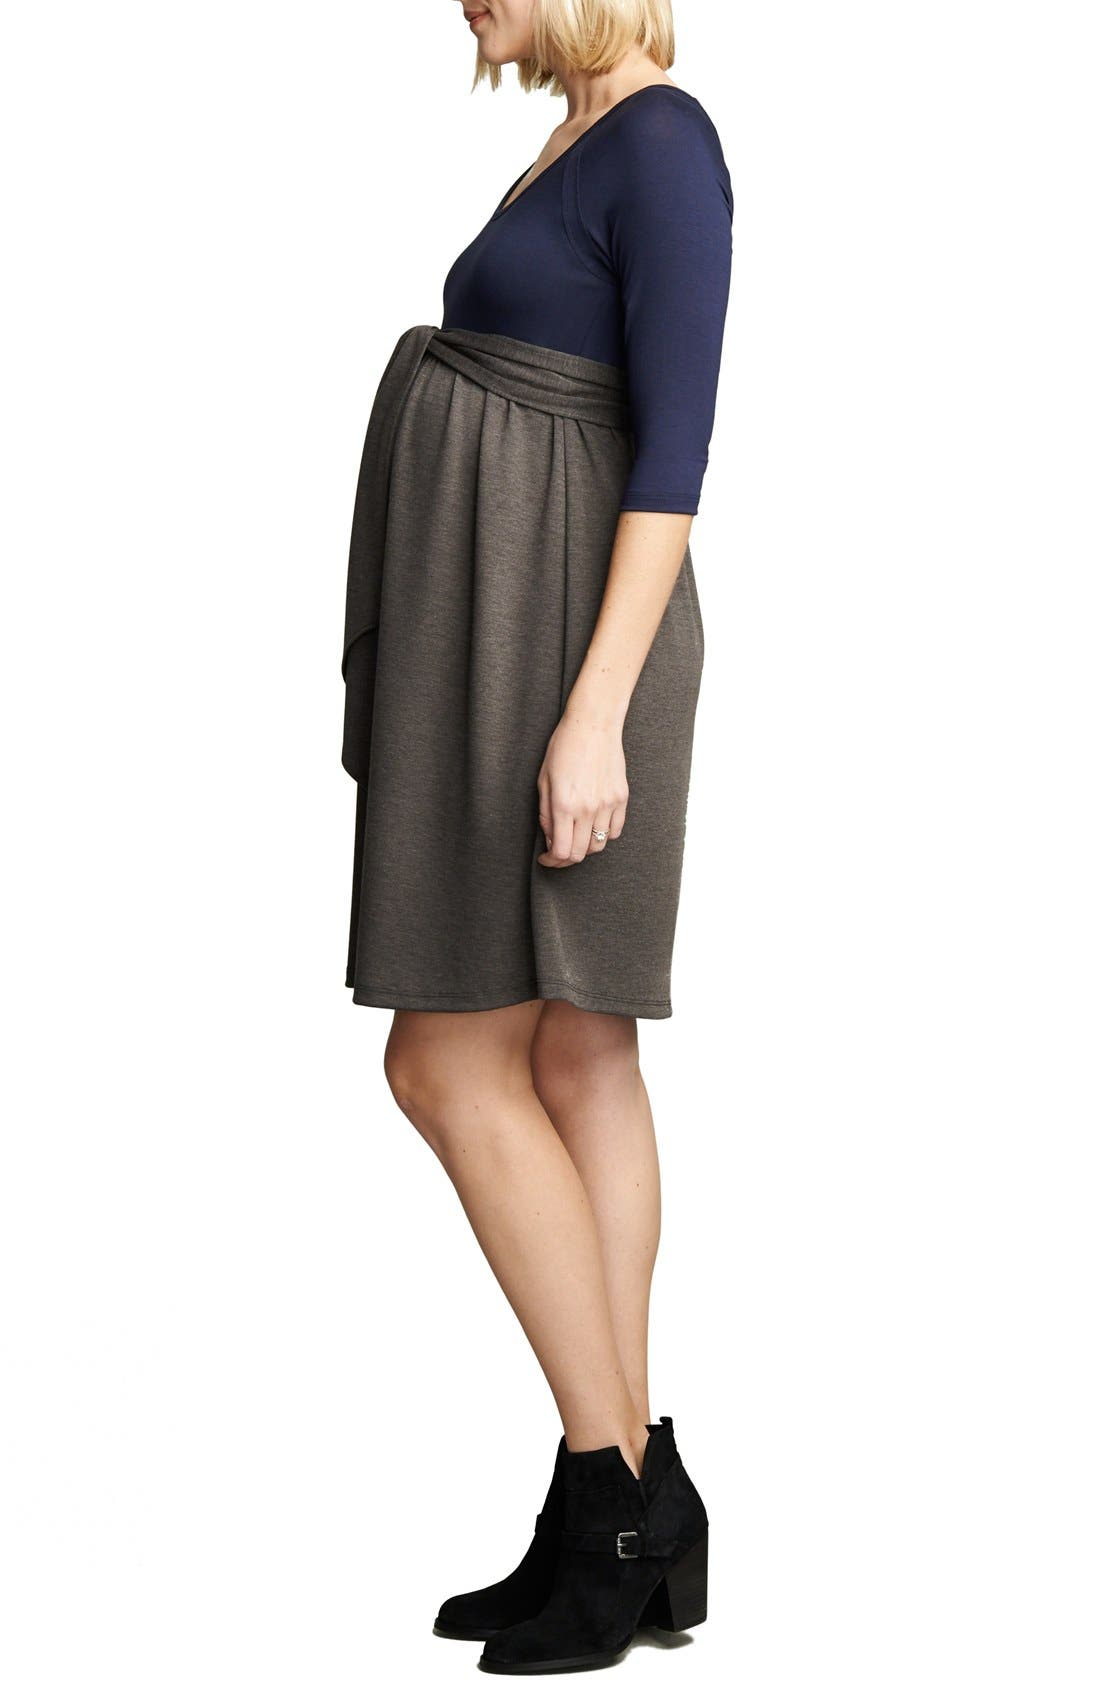 Tie Front Maternity Dress,                             Alternate thumbnail 3, color,                             Navy/Charcoal